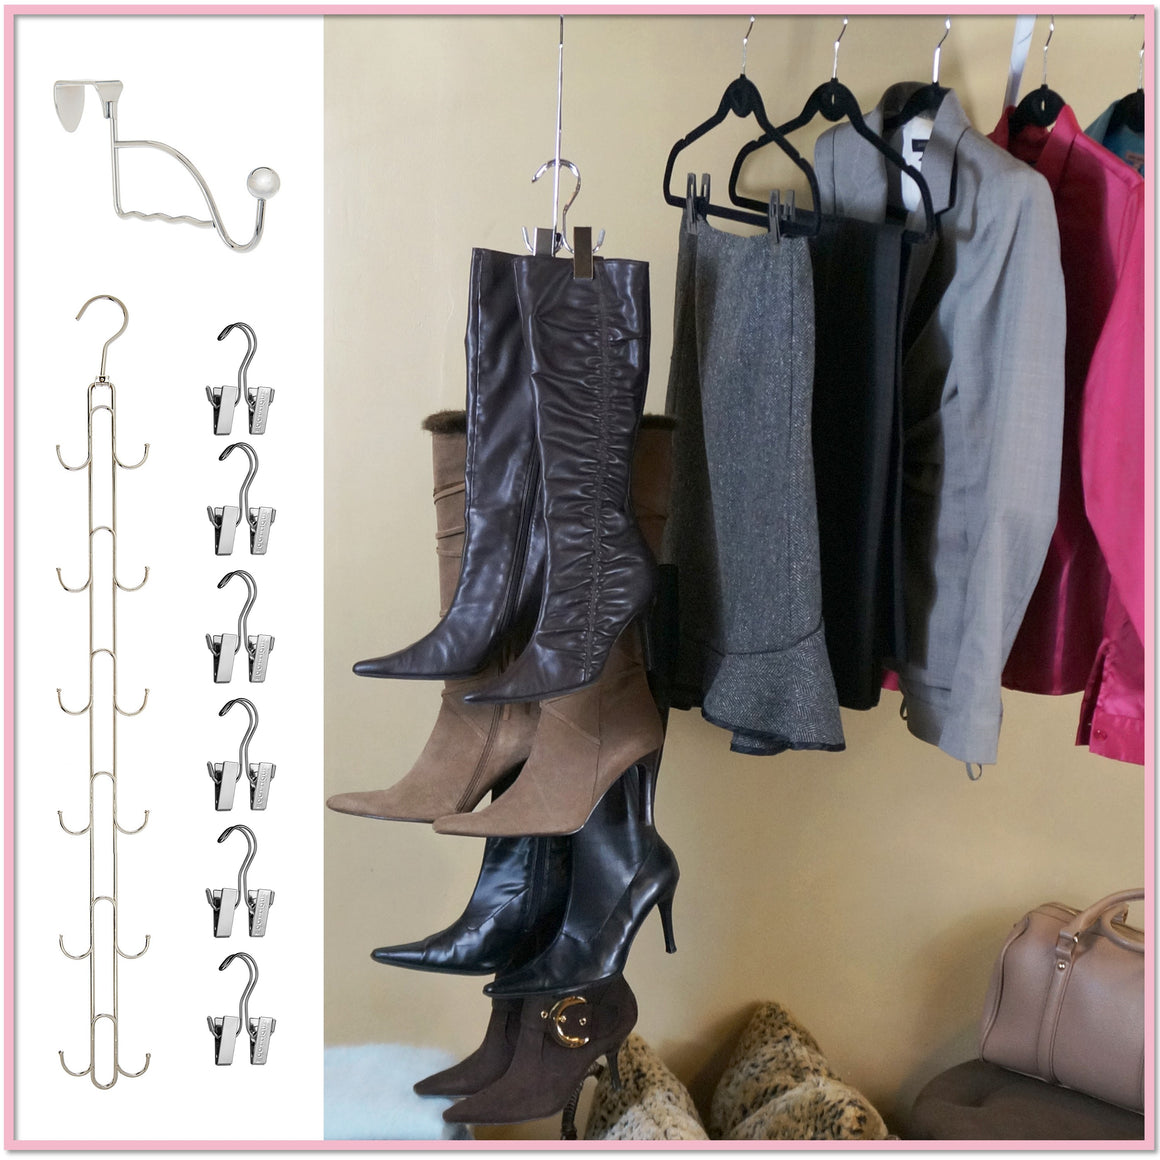 Boot Stax™ (Includes 6 Boot Hangers) - Amazon's Choice - Boottique